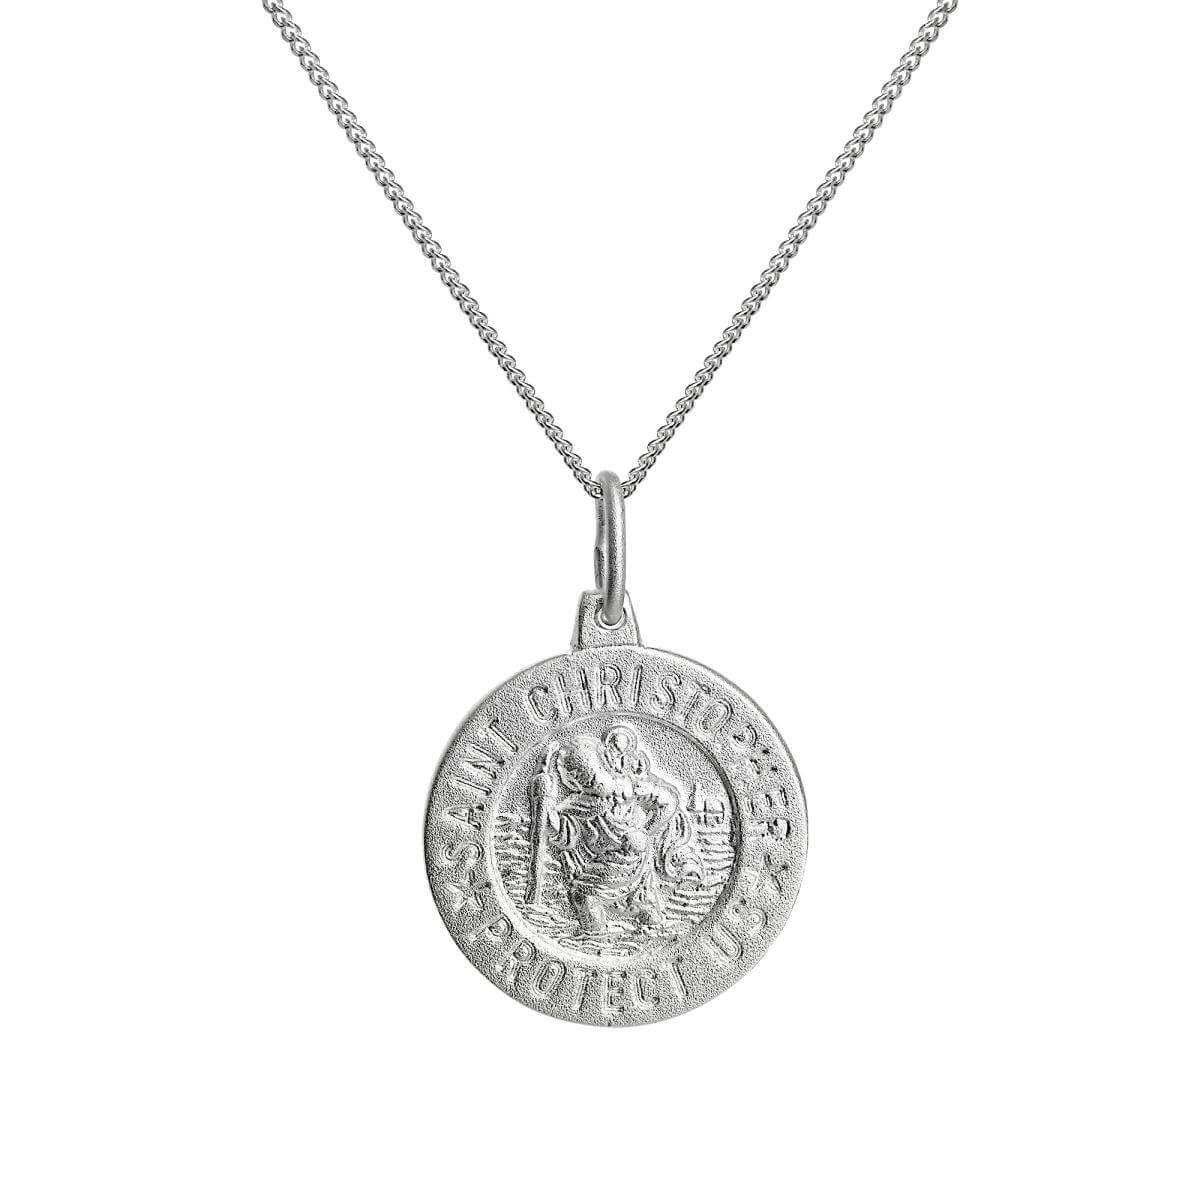 Matt Sterling Silver Saint Christopher Medal Pendant Necklace 16 - 22 Inches